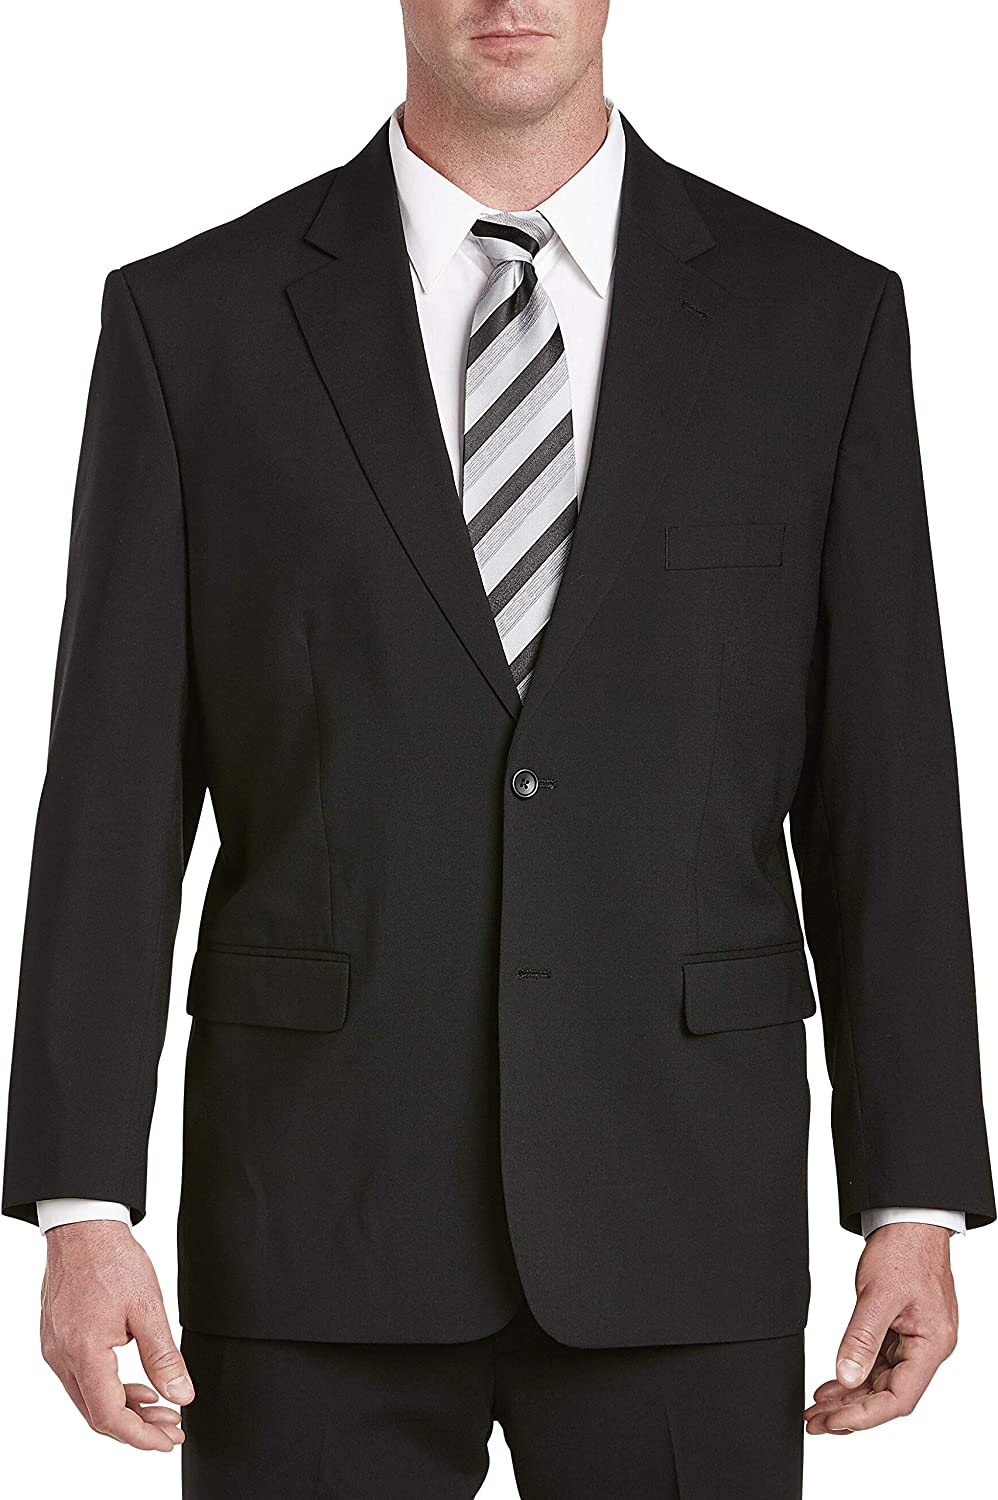 Gold Series by DXL Big and Tall Jacket-Relaxer Suit Jacket (Regular/Short)